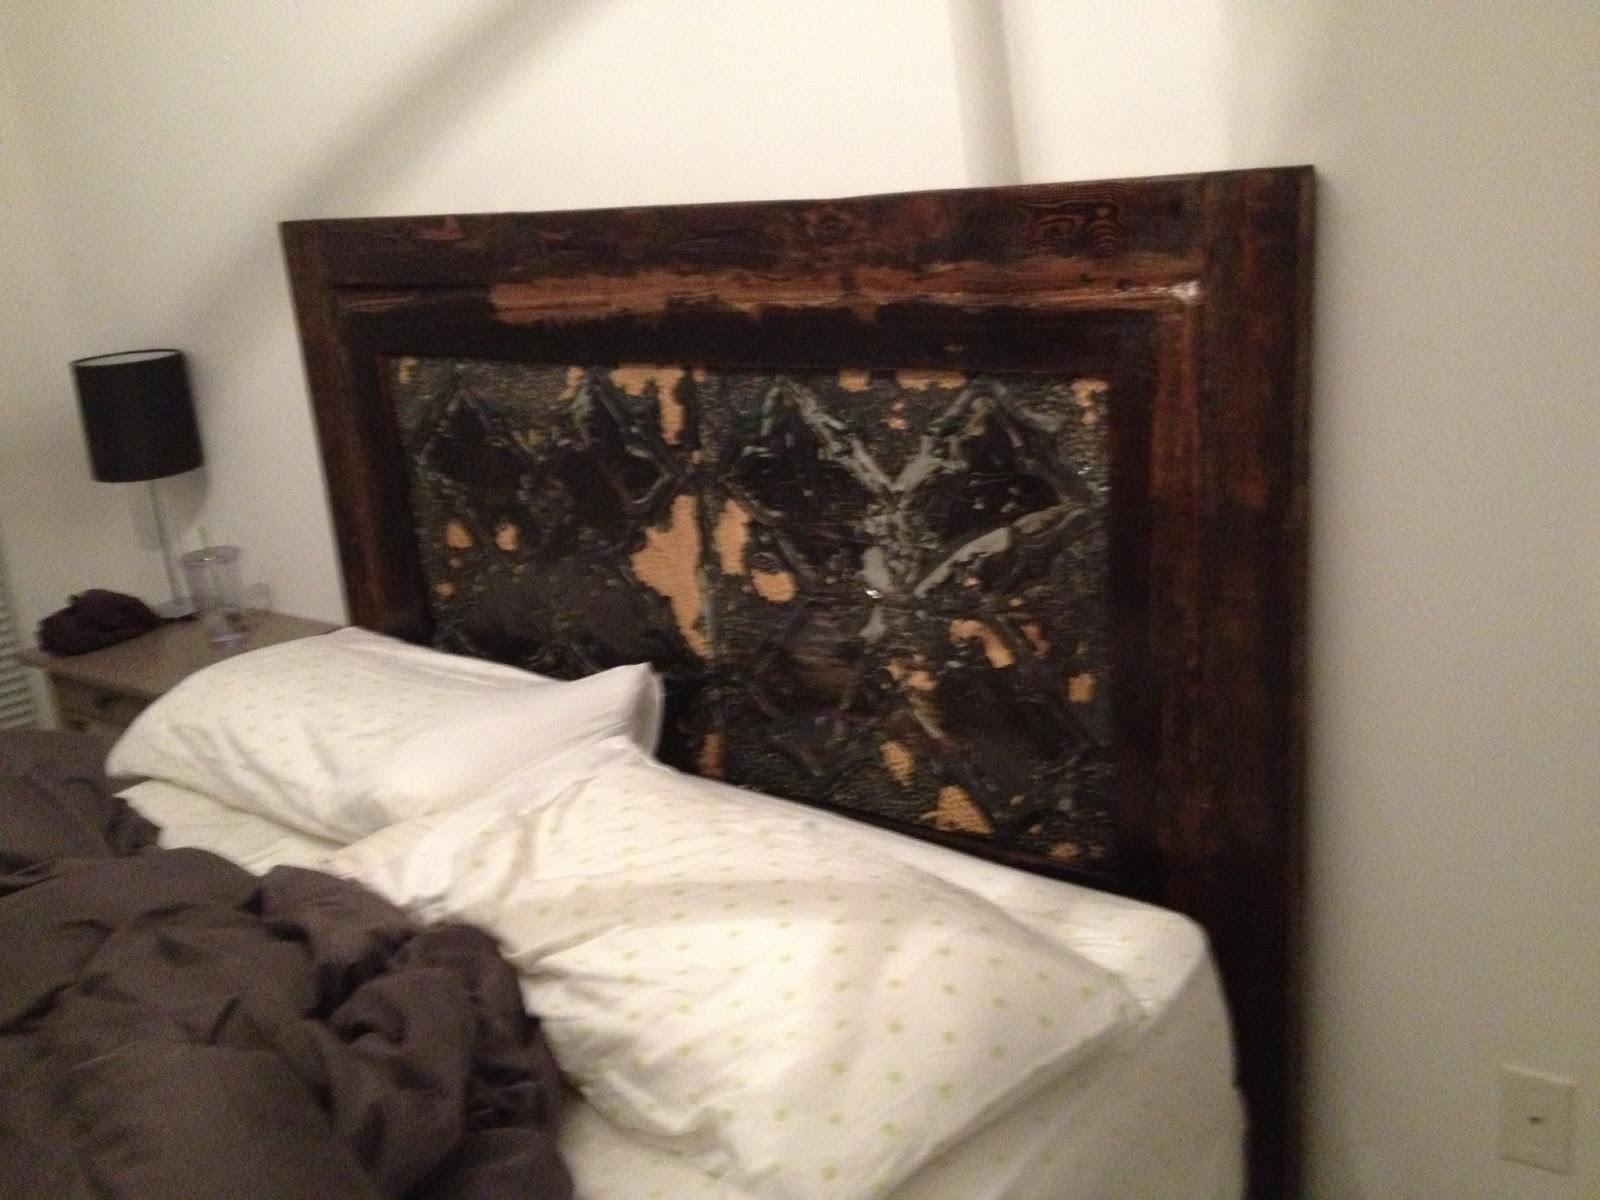 Ceiling Tile Headboard